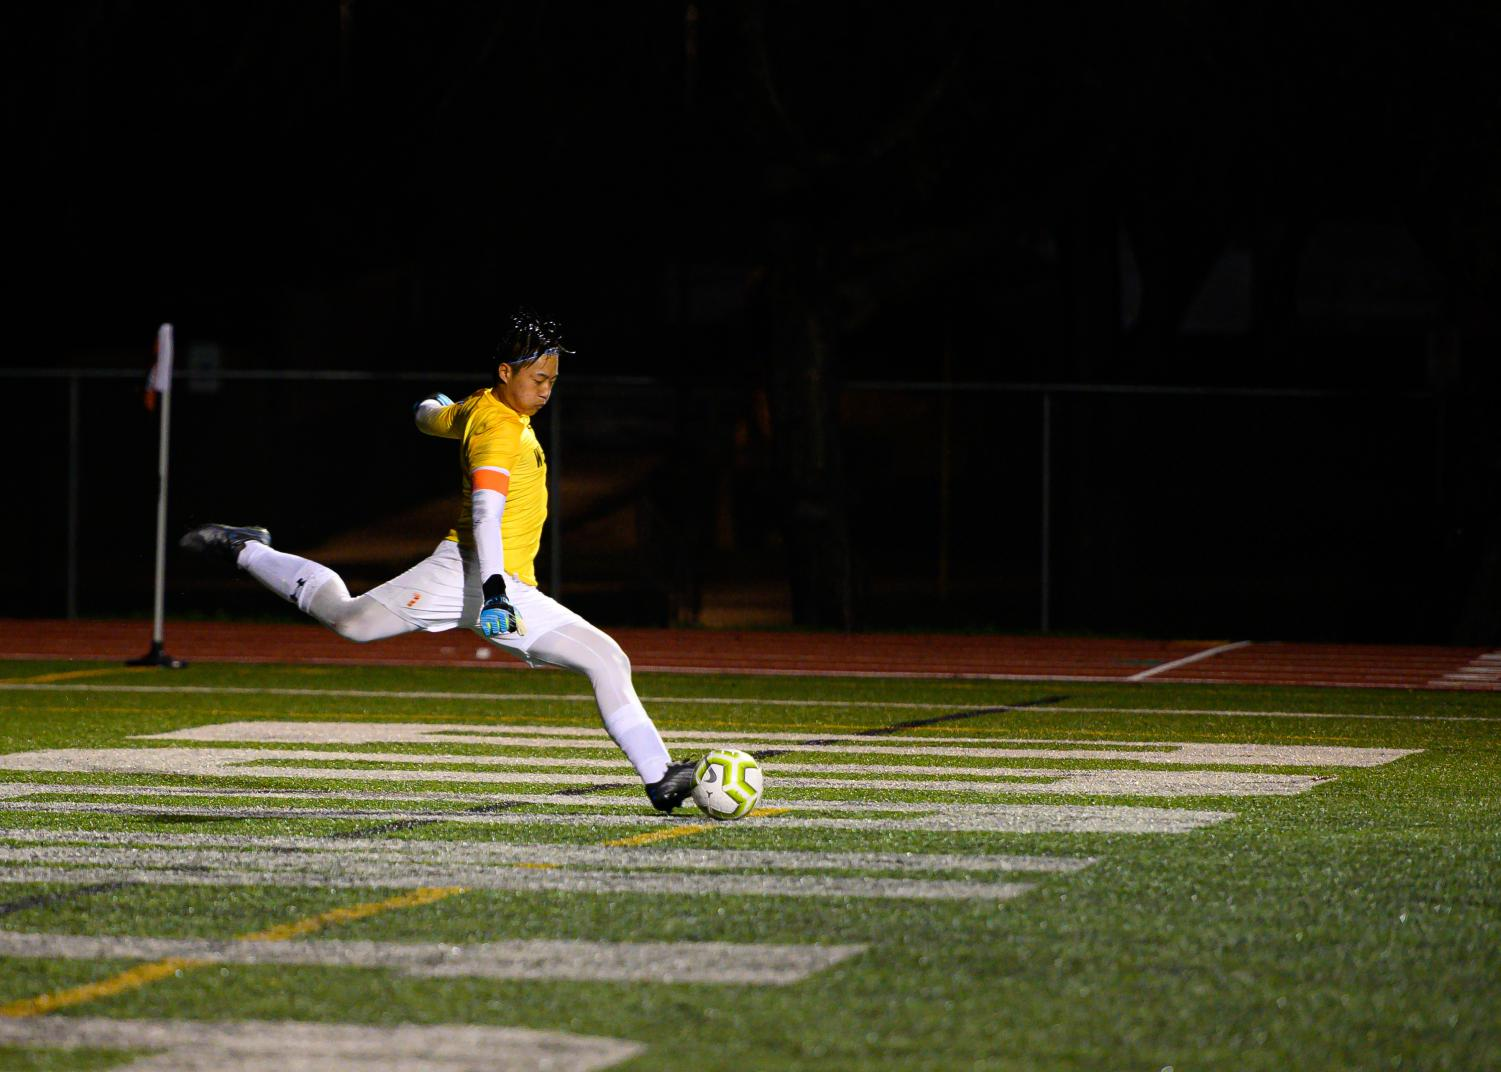 Running+towards+the+ball%2C+goalkeeper+Justin+Lang+%2720+kicks+the+ball+down+field.+Lang+blocked+a+lot+of+close+shots+throughout+the+game+never+allowing+the+offensive+team+to+score+a+single+goal.